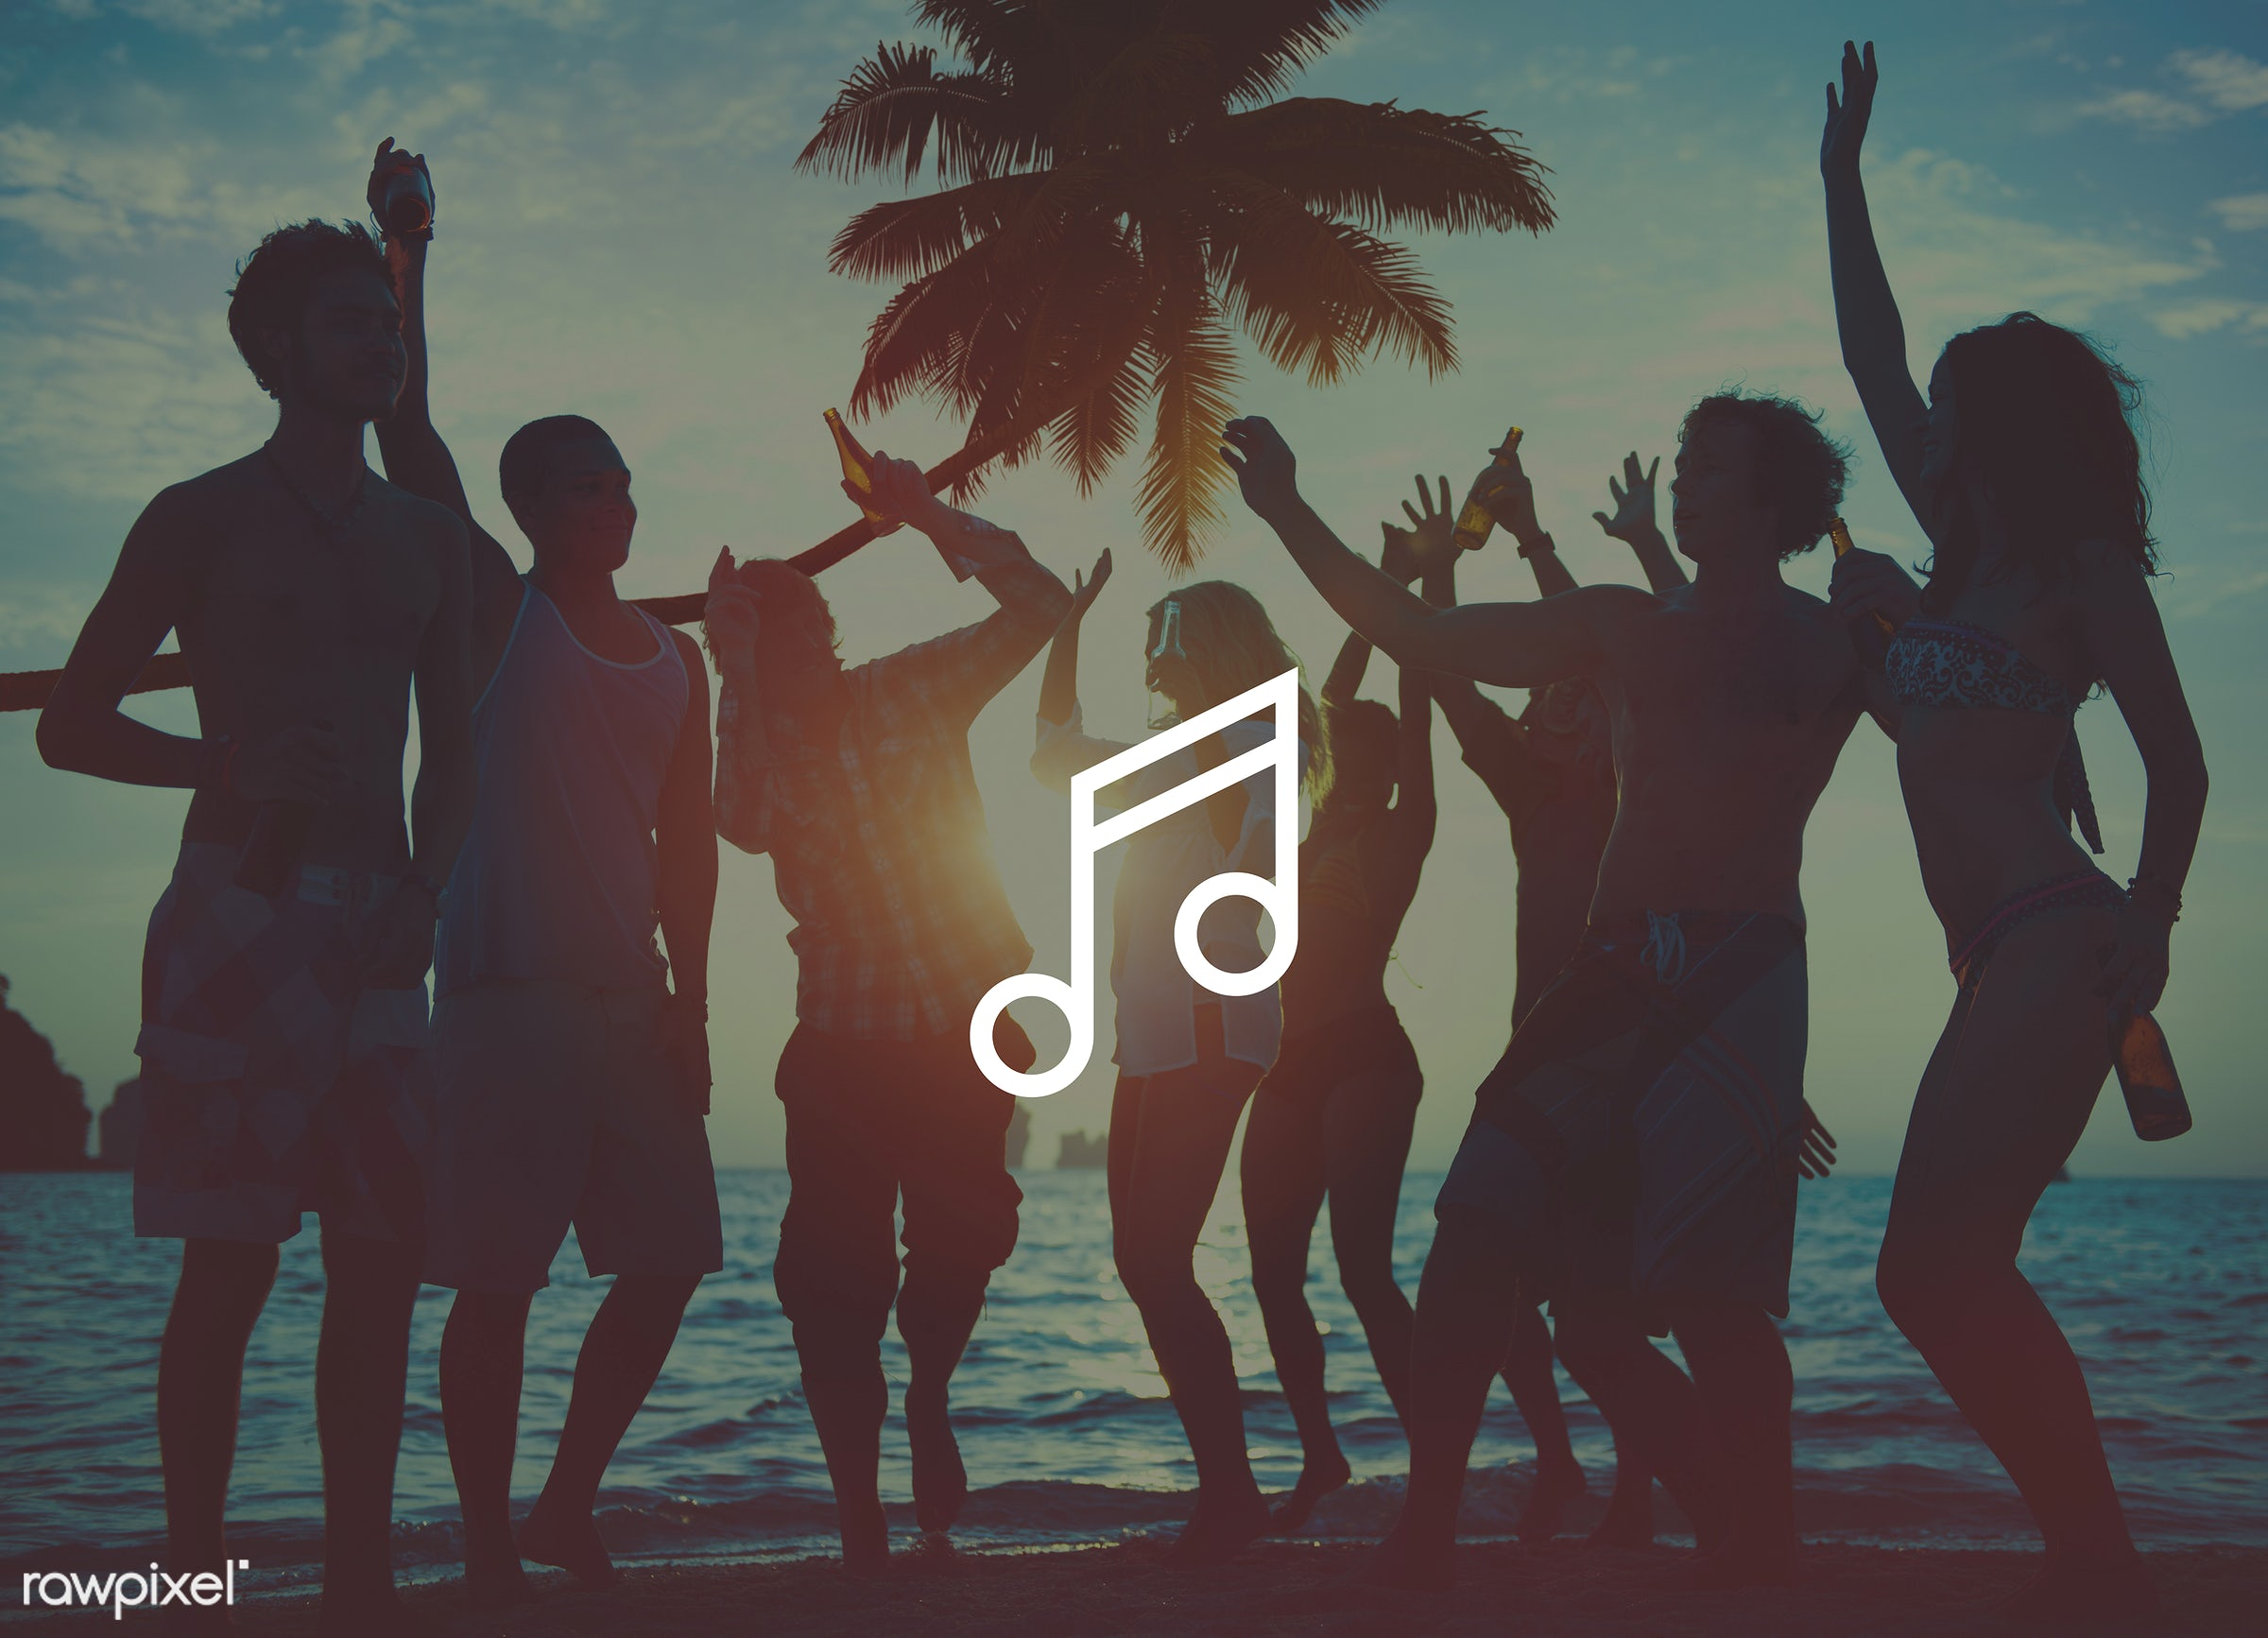 festive, dancing, drinking, silhouette, tropical, musical note, beach, party, people, friends, beer, festival, crowd, music...